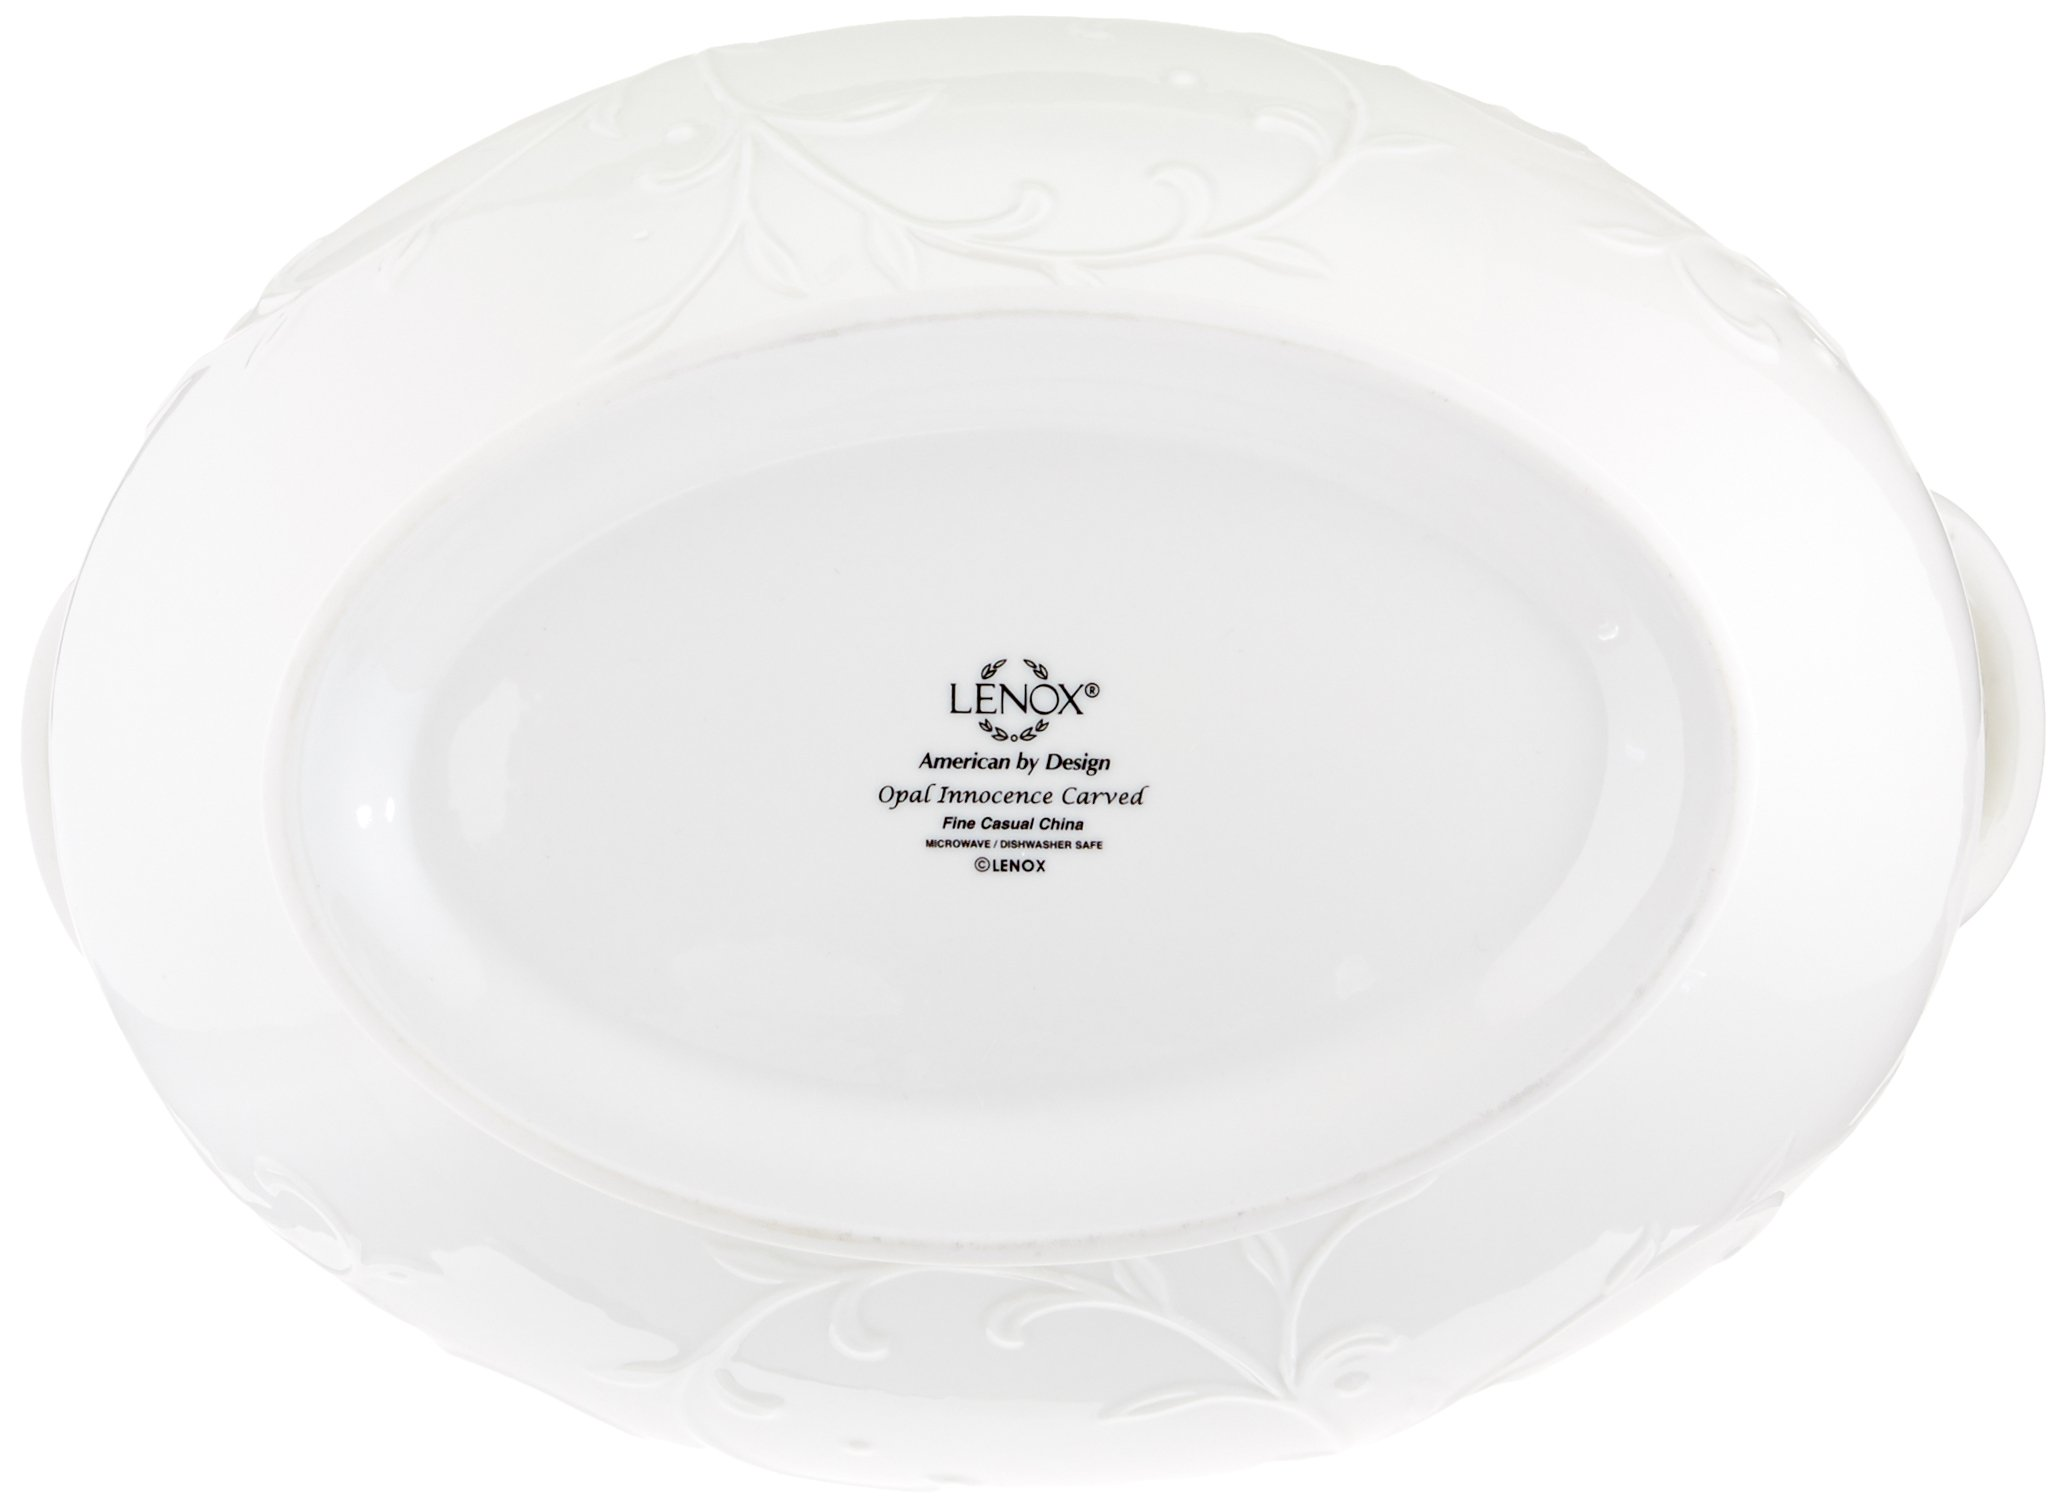 Lenox Opal Innocence Carved Covered Soup Tureen with Ladle, 10-1/4-Inch by Lenox (Image #4)